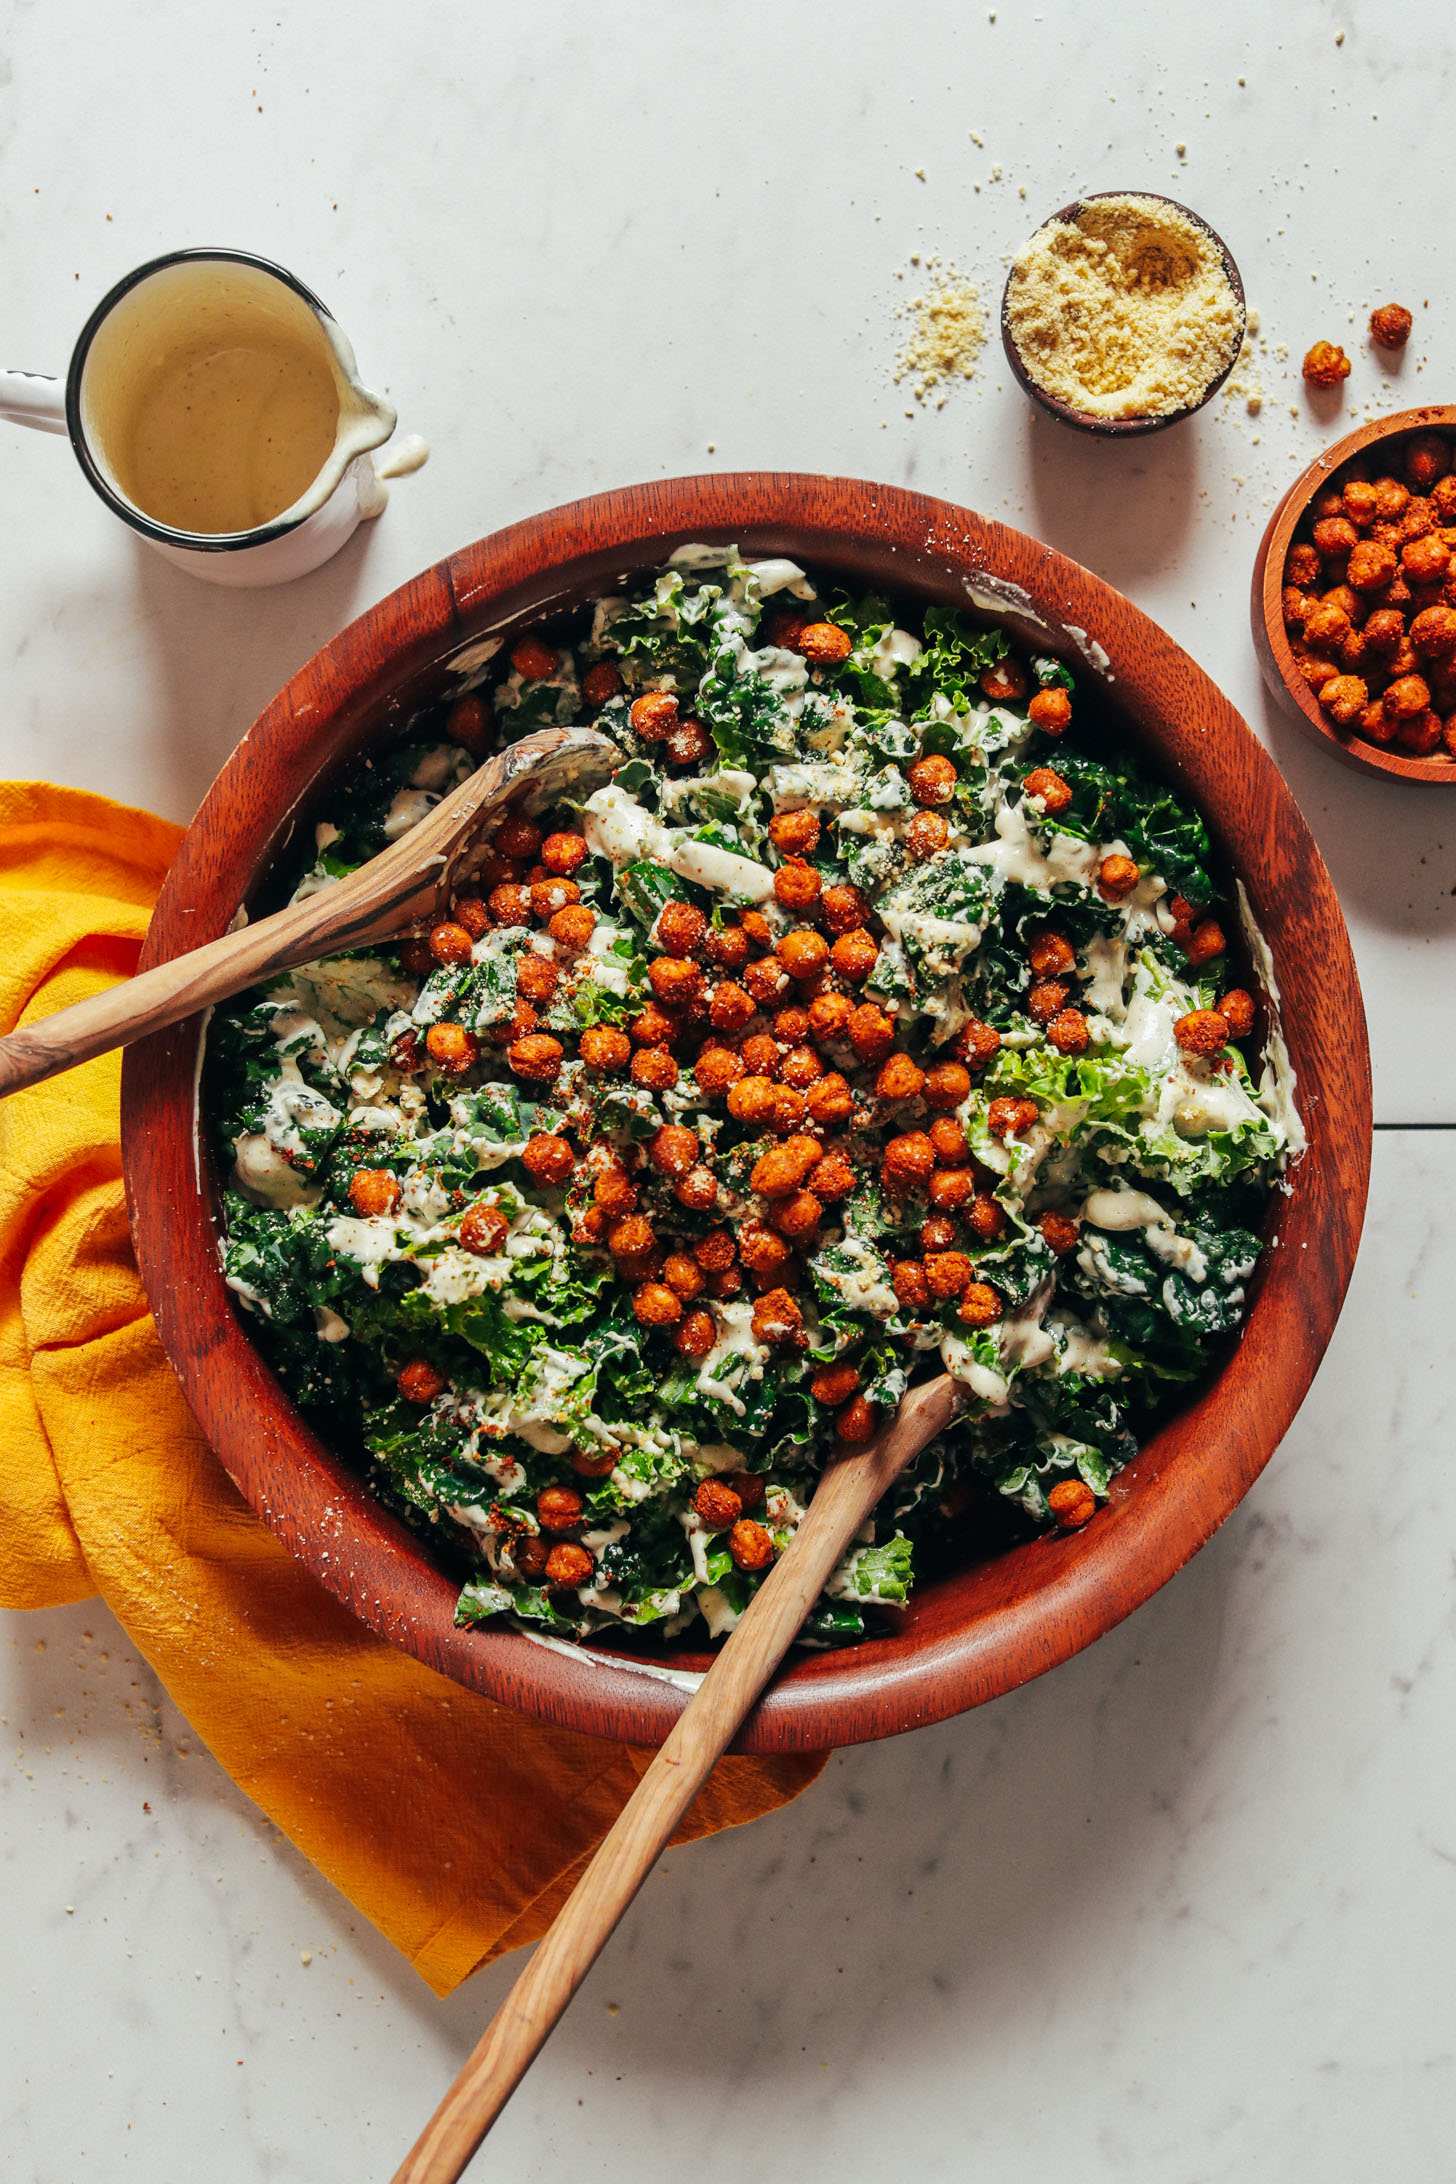 Wooden bowl of Chickpea Kale Caesar Salad topped with tandoori chickpeas